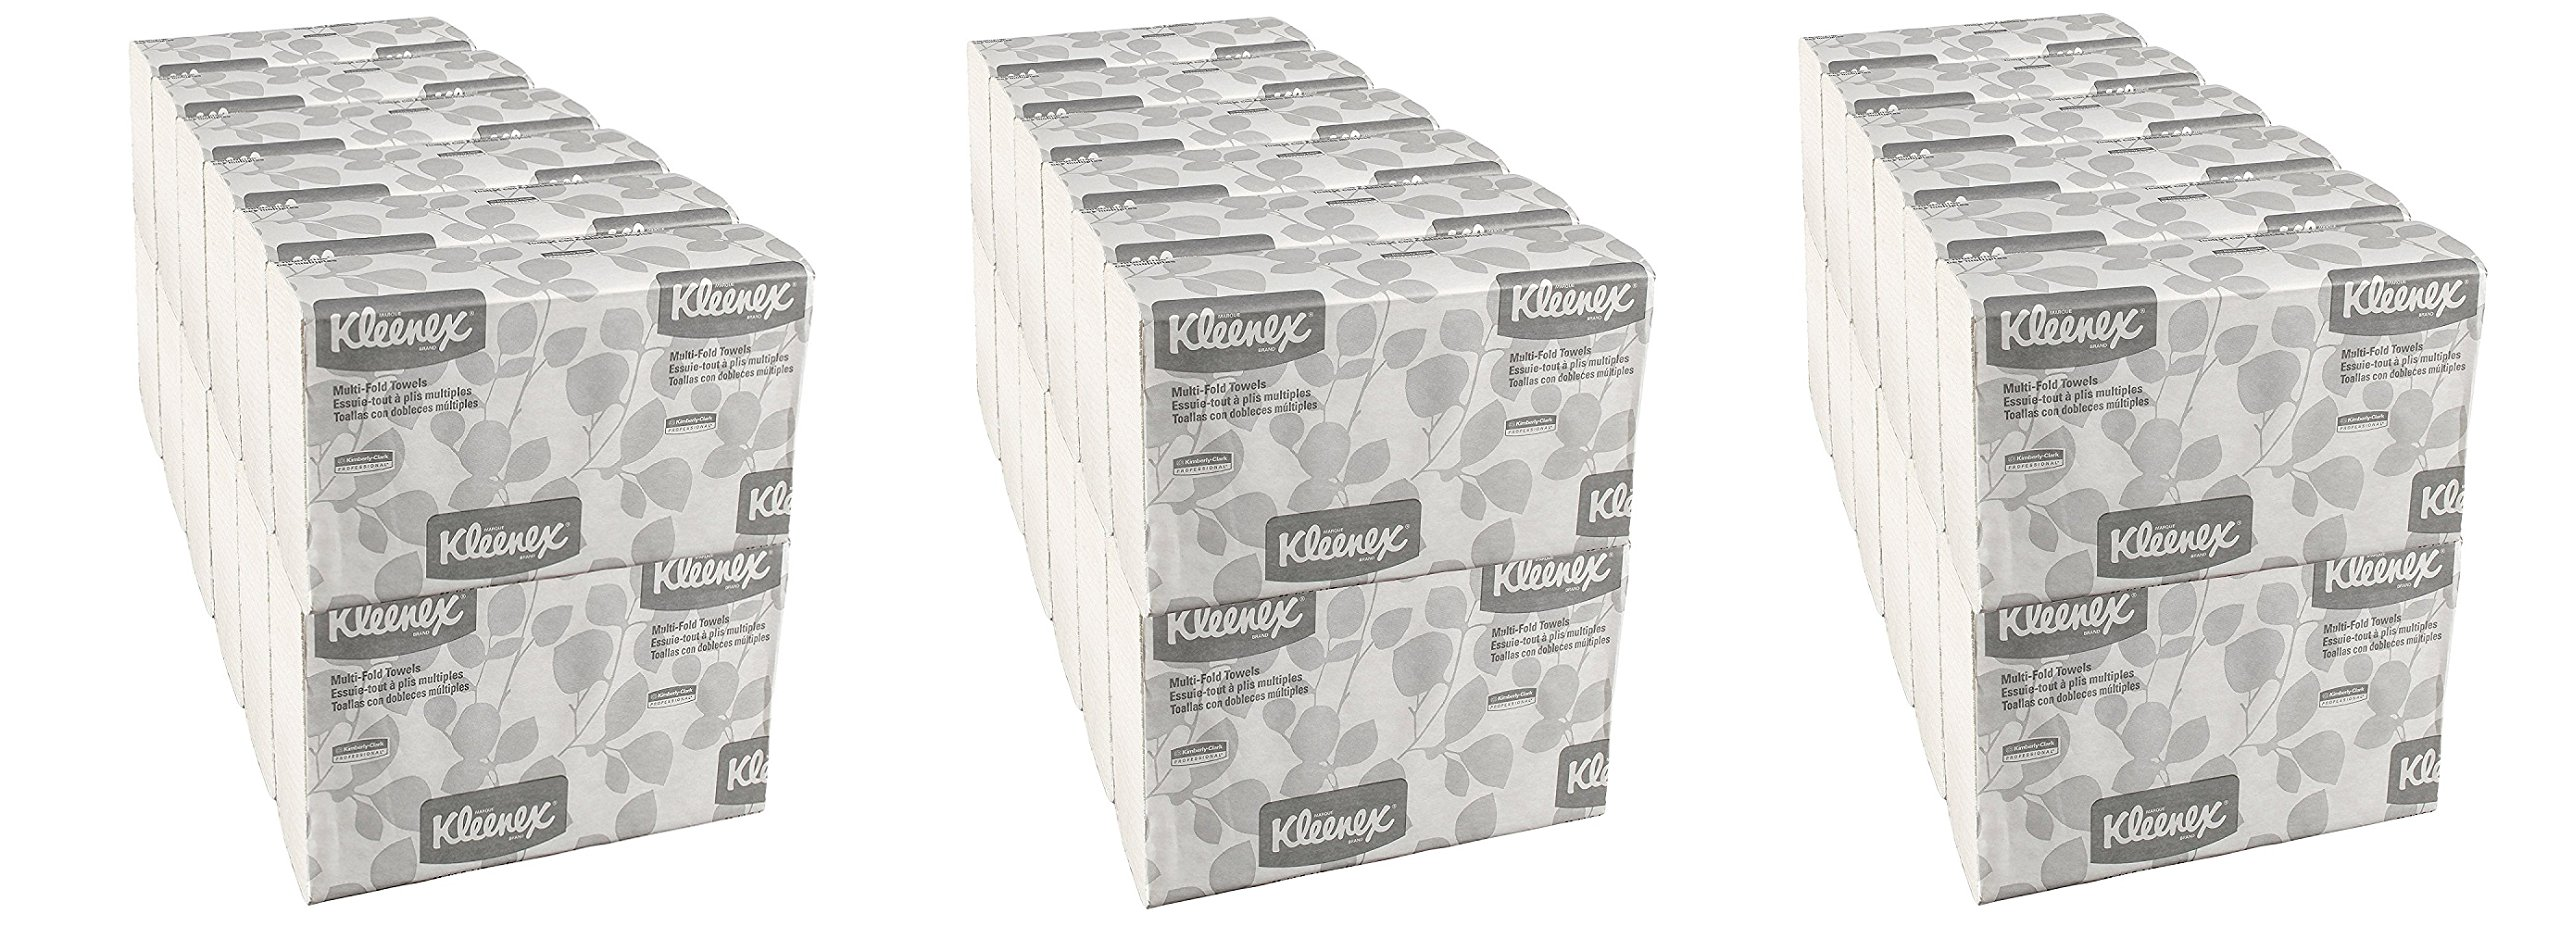 Kleenex Multifold Paper Towels (02046), White, 24 Packs / Convenience Case zAGmTR, 150 Tri Fold Paper Towels / Pack